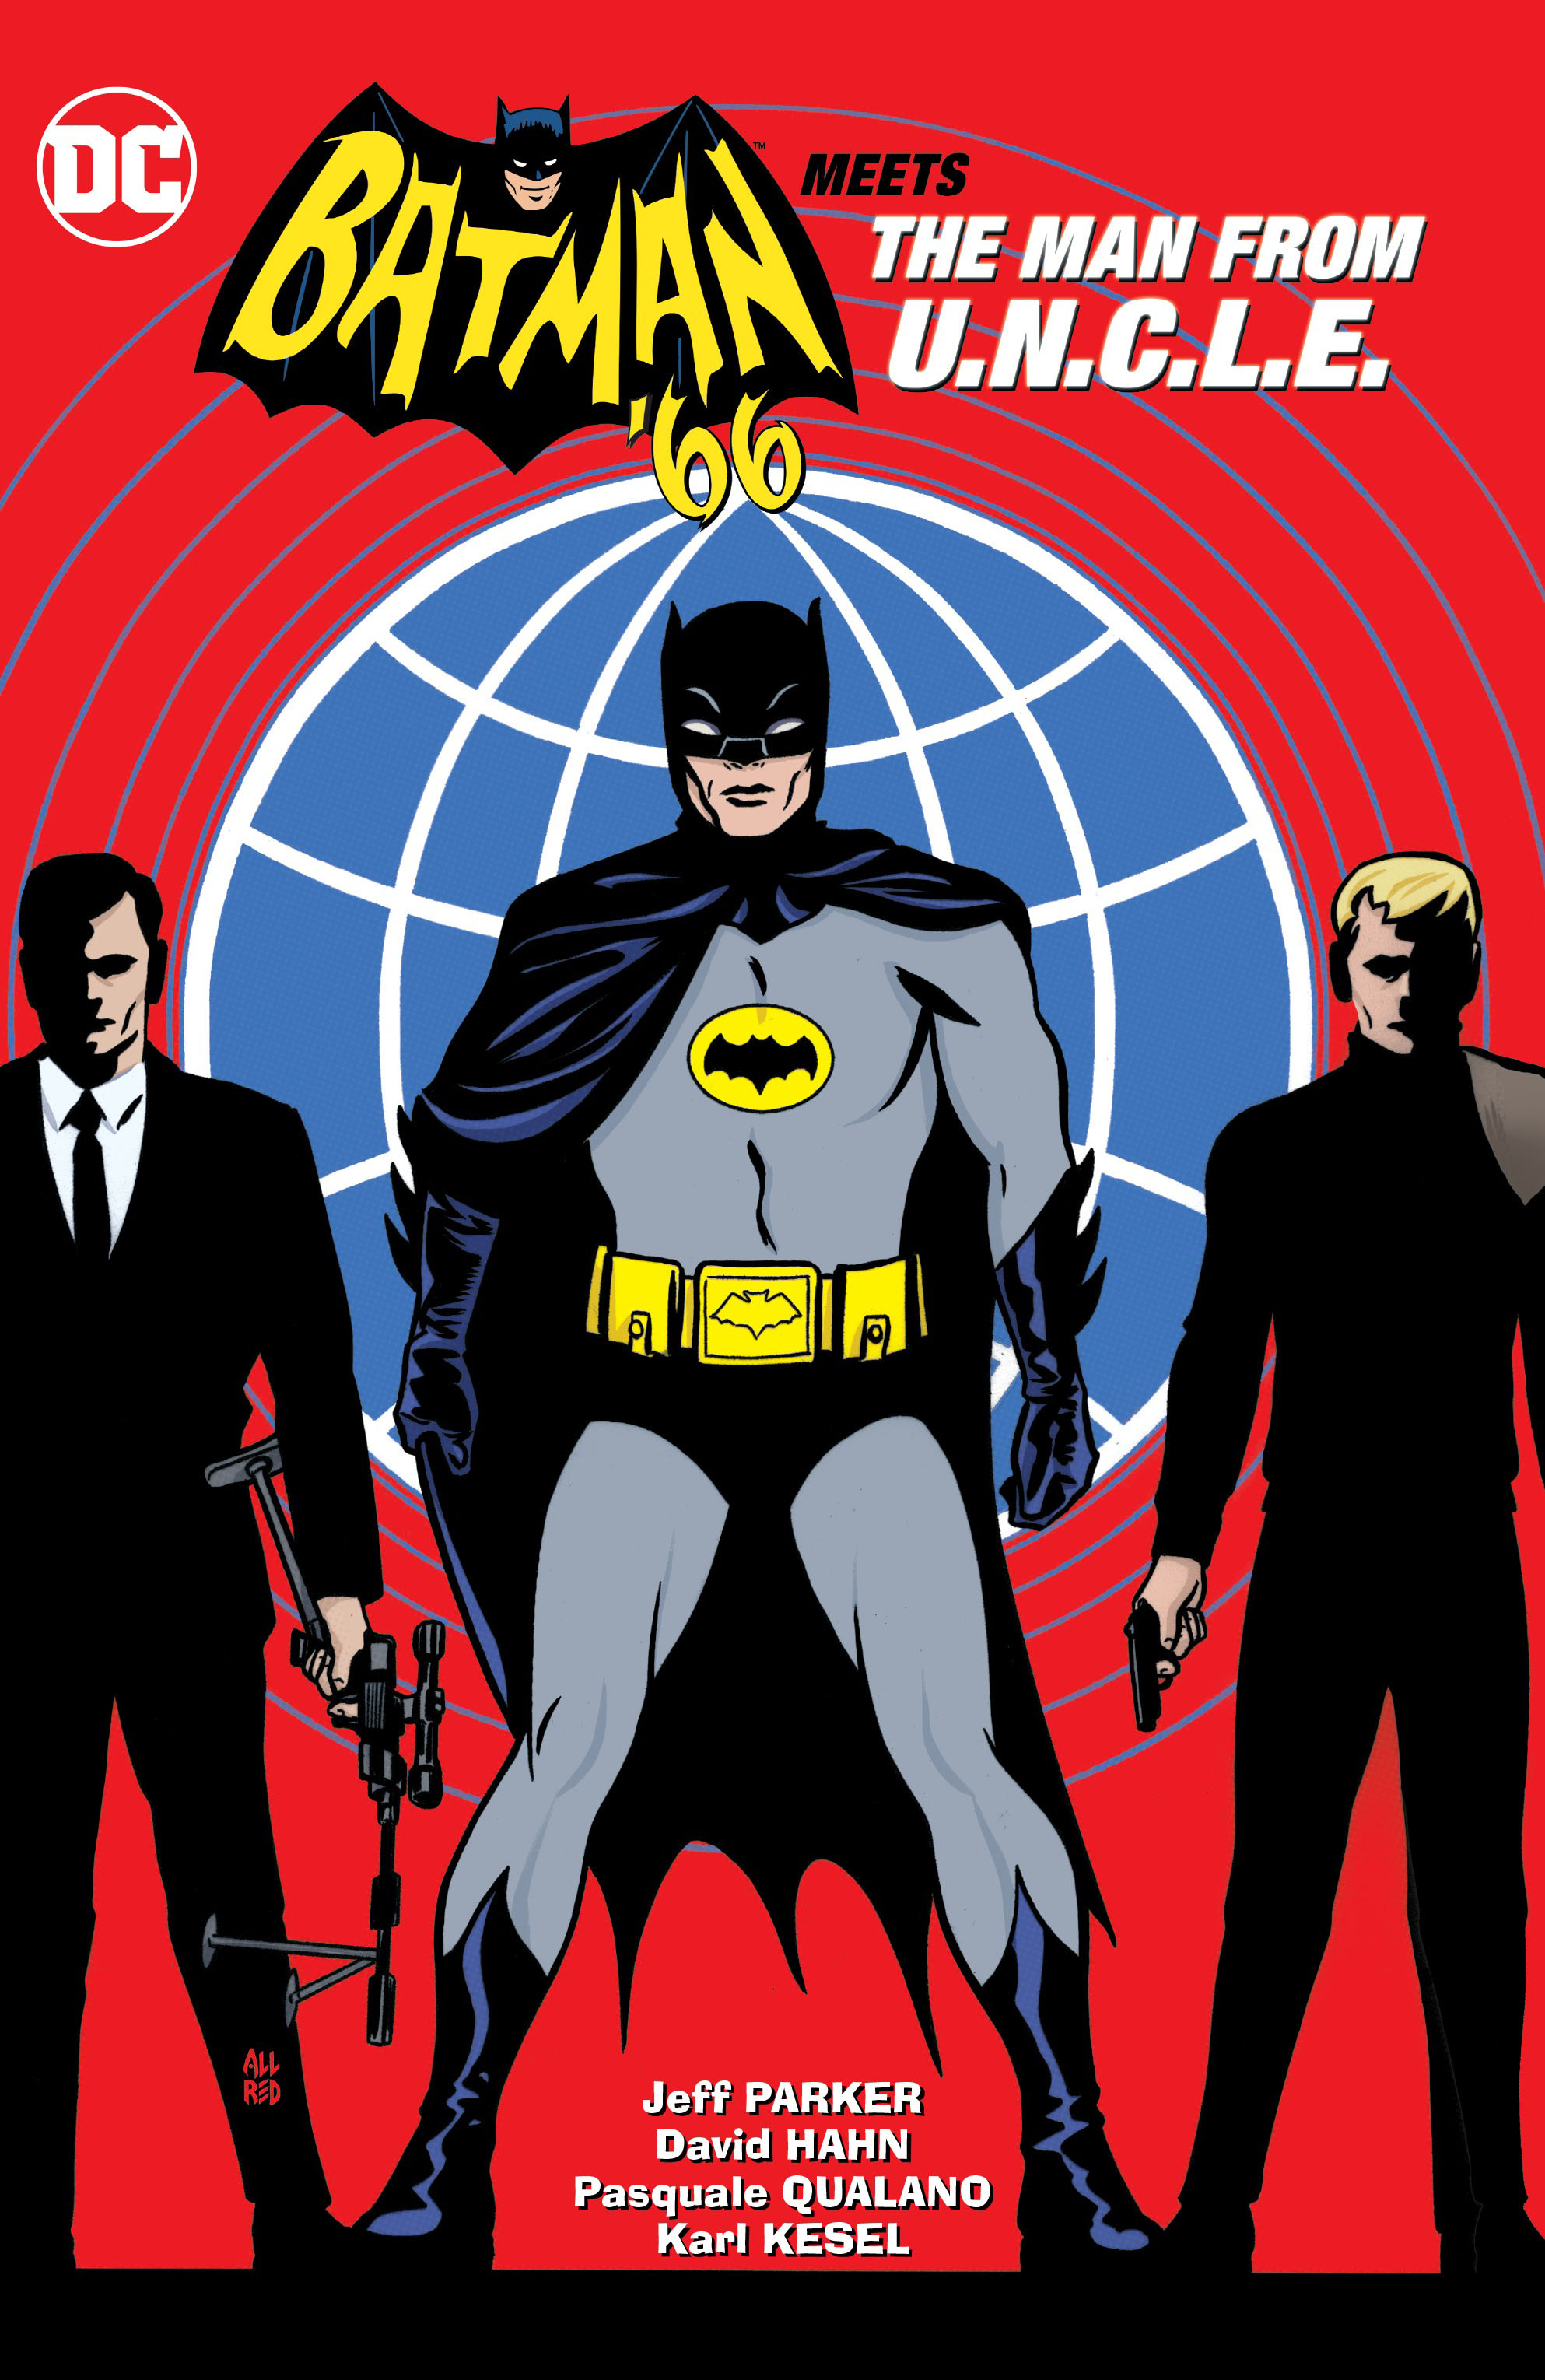 Batman '66 Meets The Man From U.N.C.L.E. batman 66 meets the man from u n c l e